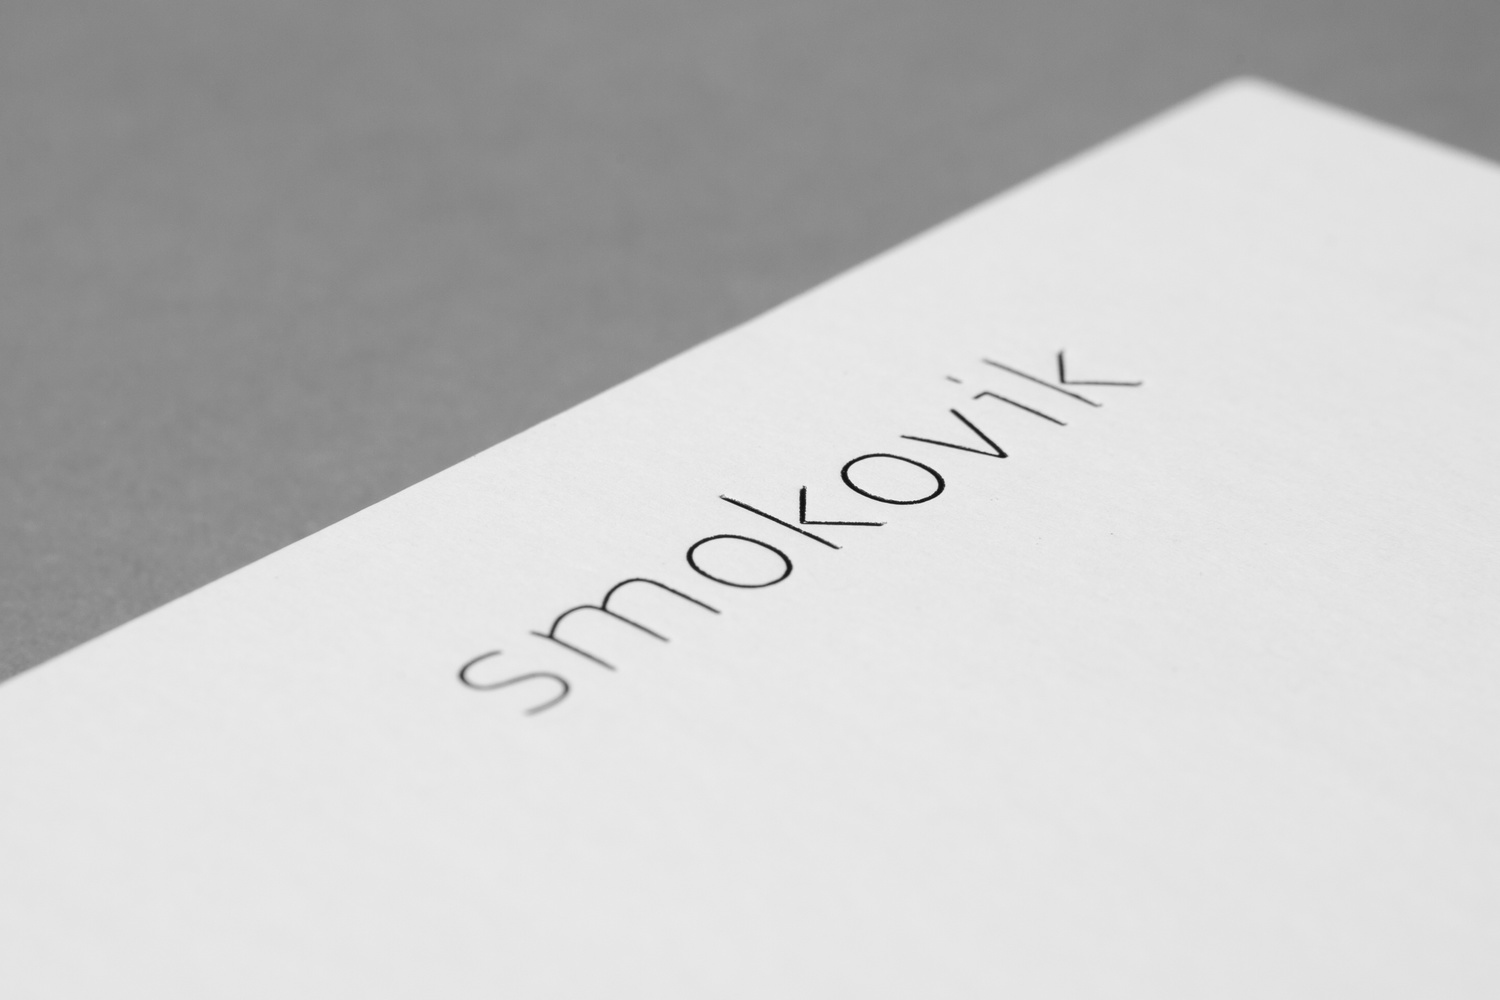 Branding by Studio8585 for Croatian property development Smokovik